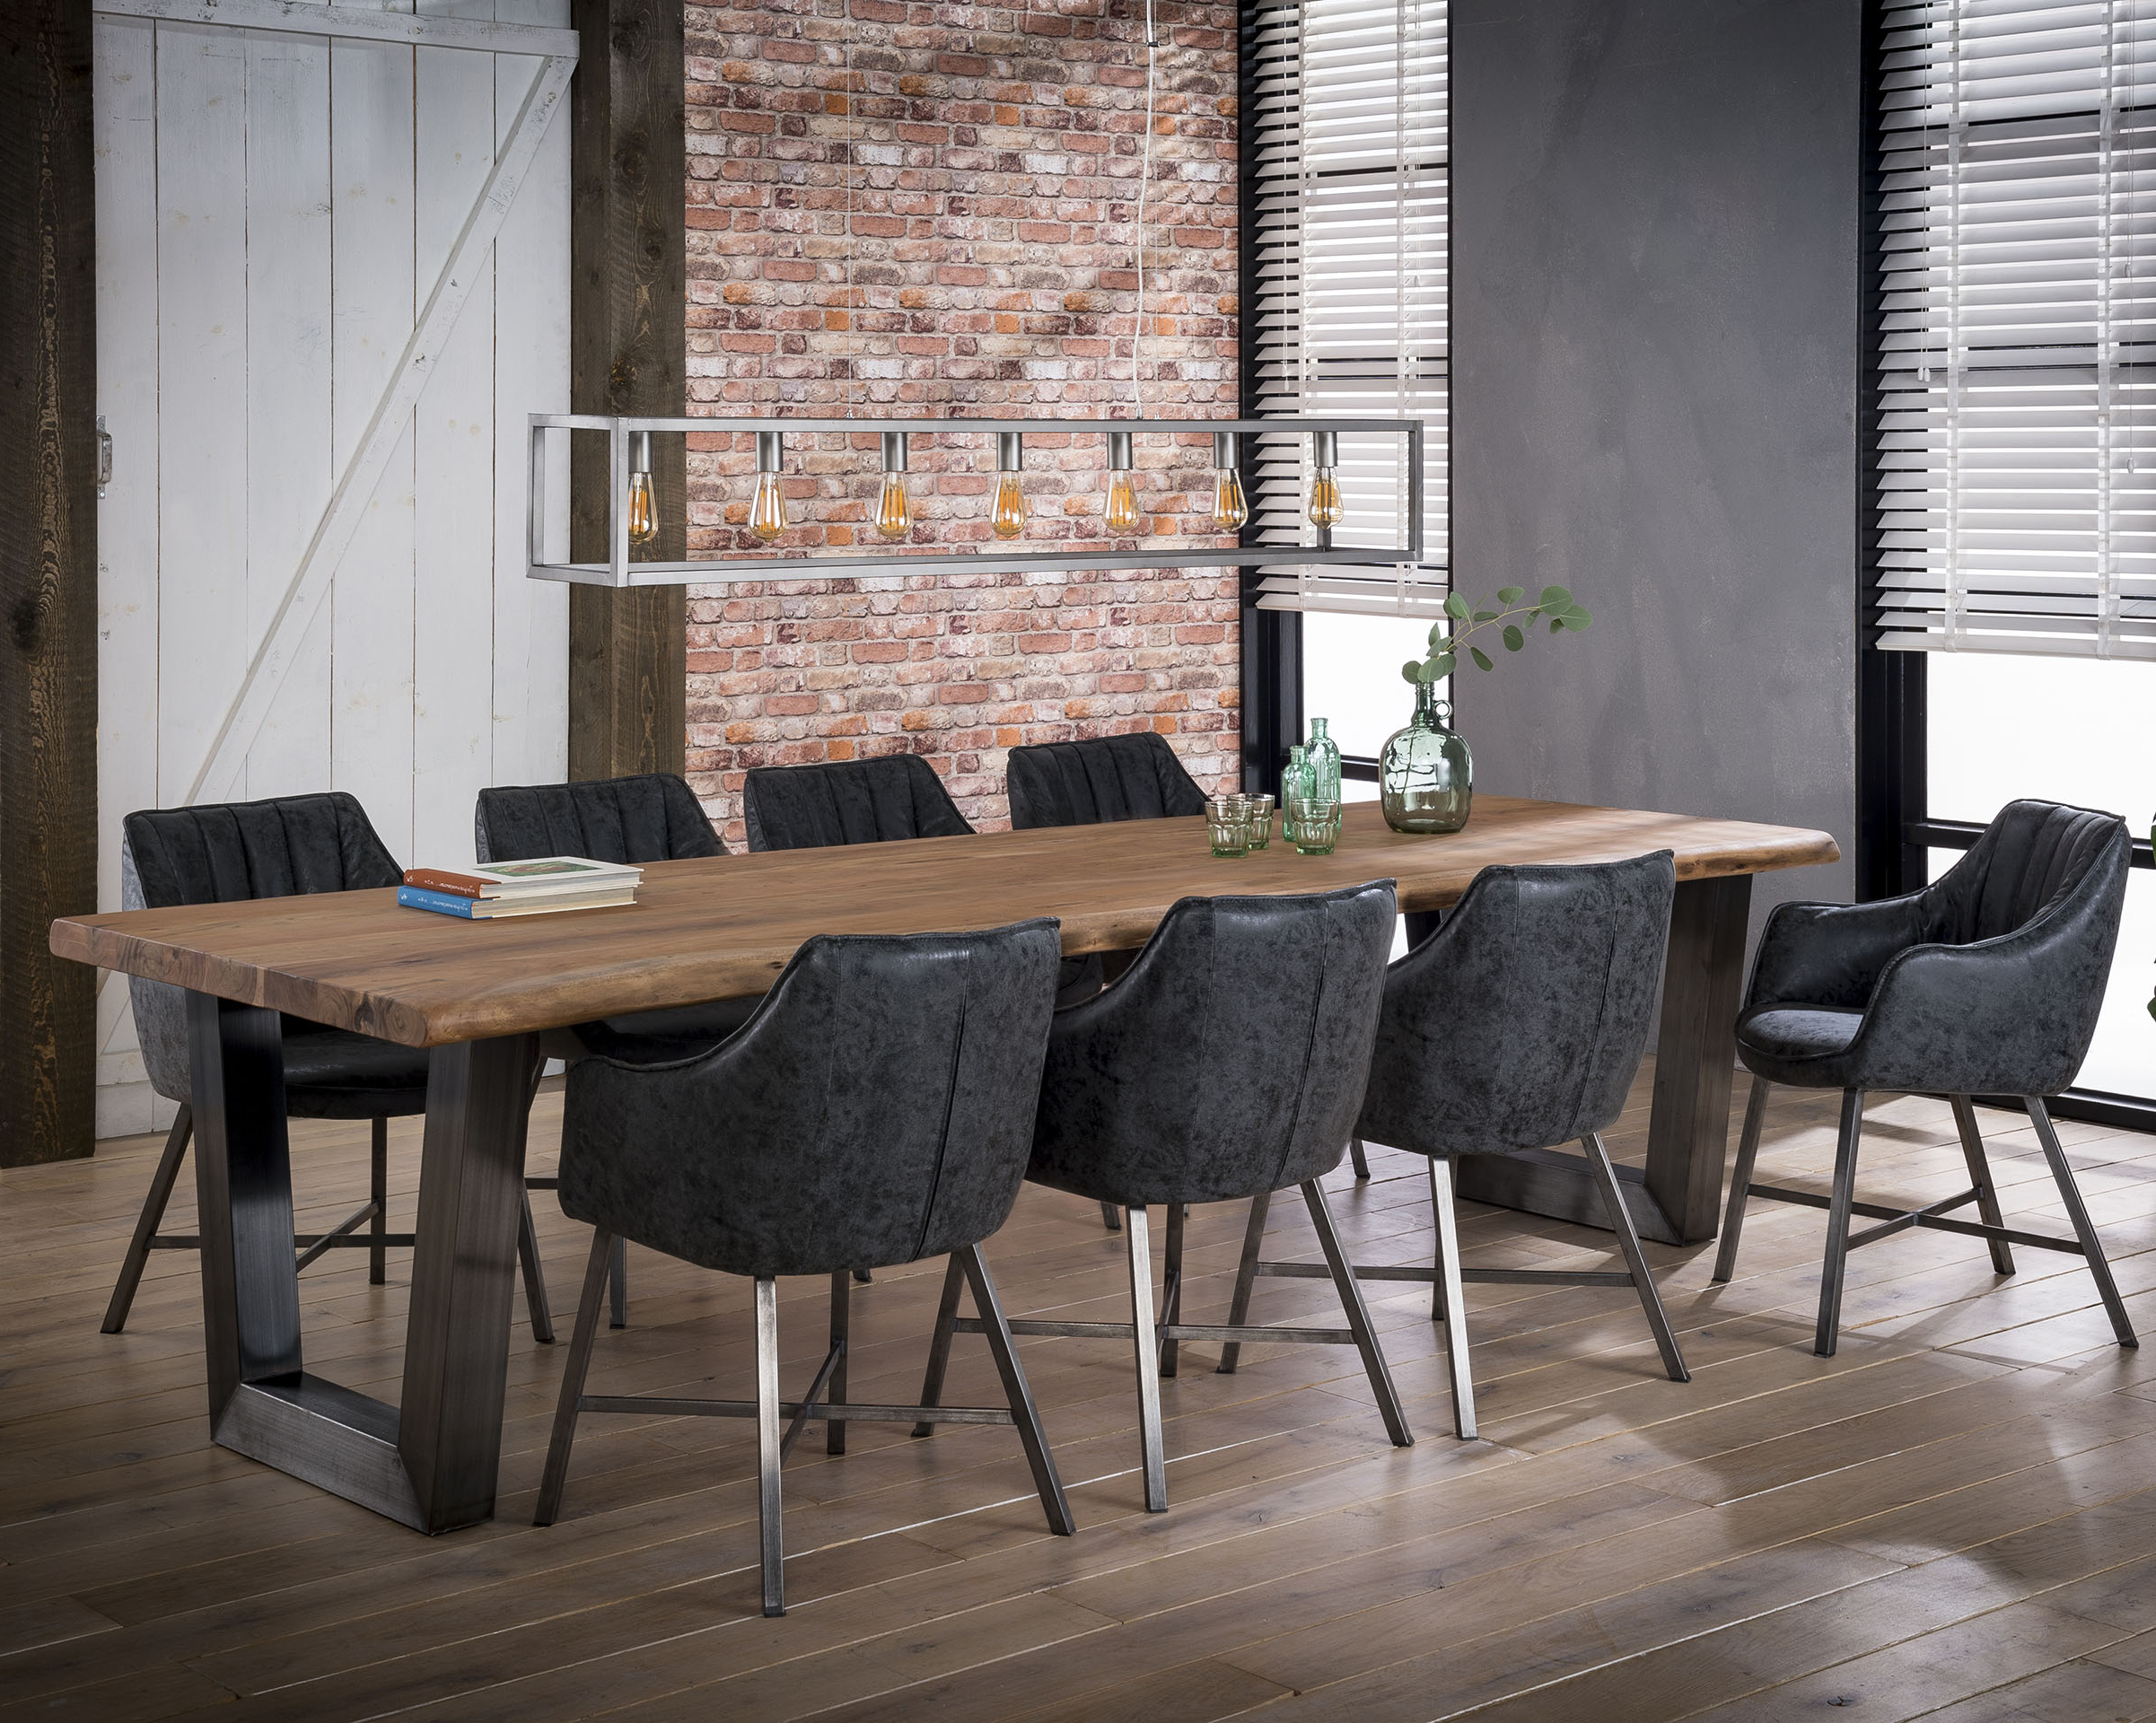 Dining Table 300cm Log In 60mm Thick Solid Acacia With Intended For Well Liked Dining Tables With Brushed Stainless Steel Frame (View 15 of 30)